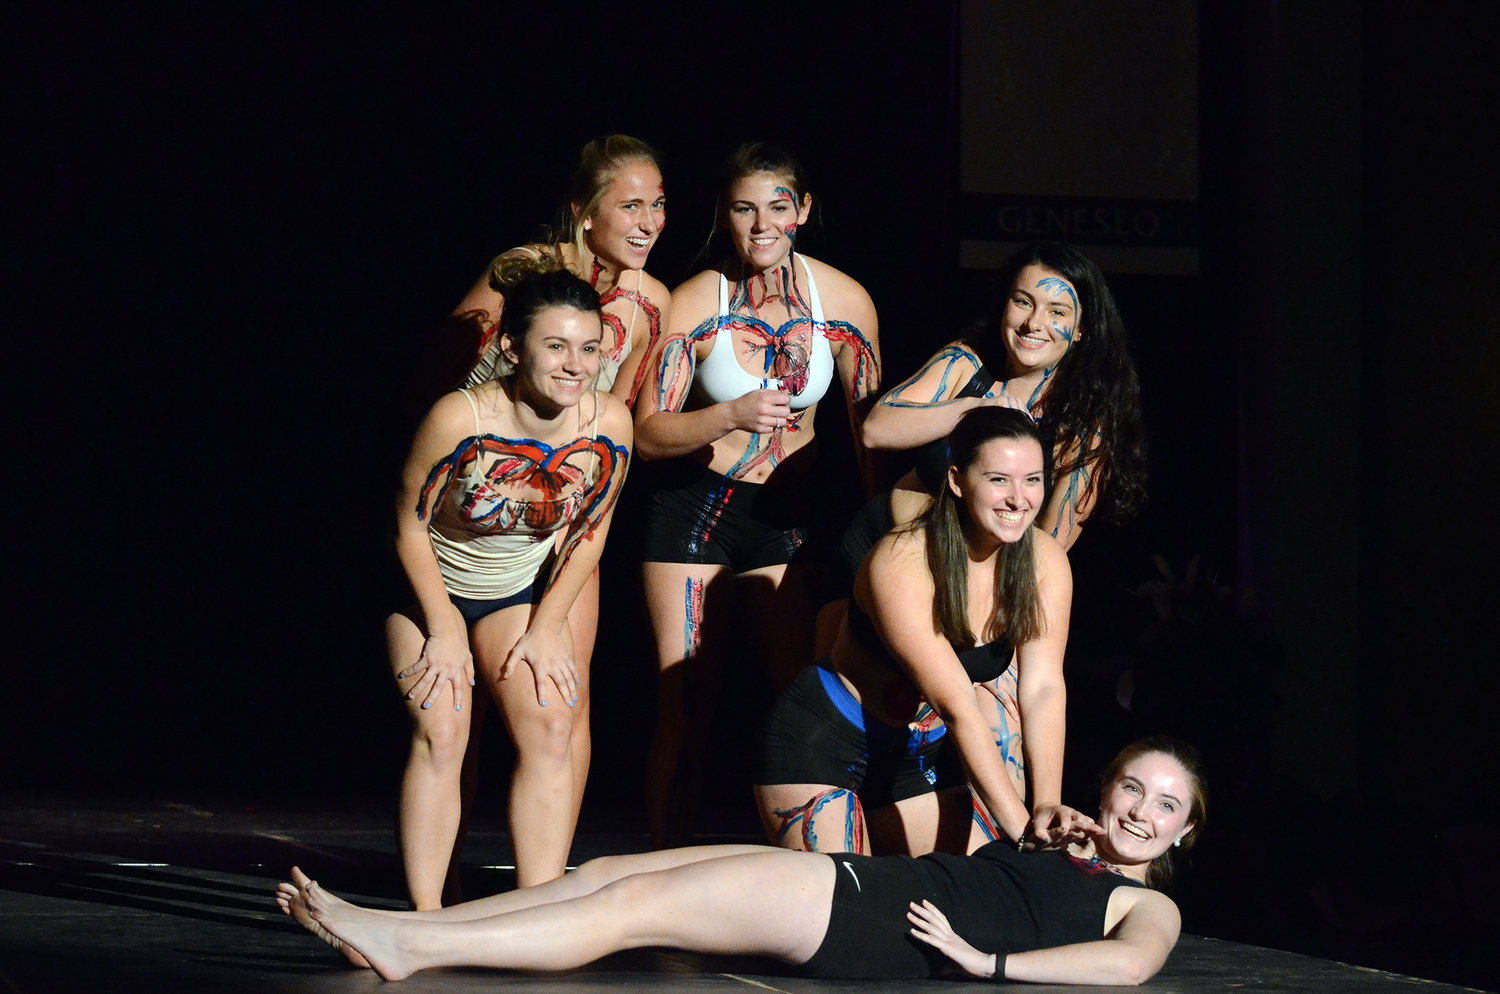 Copy of Phi Delta Epsilon Anatomy Fashion Show - State University of New York at Geneseo